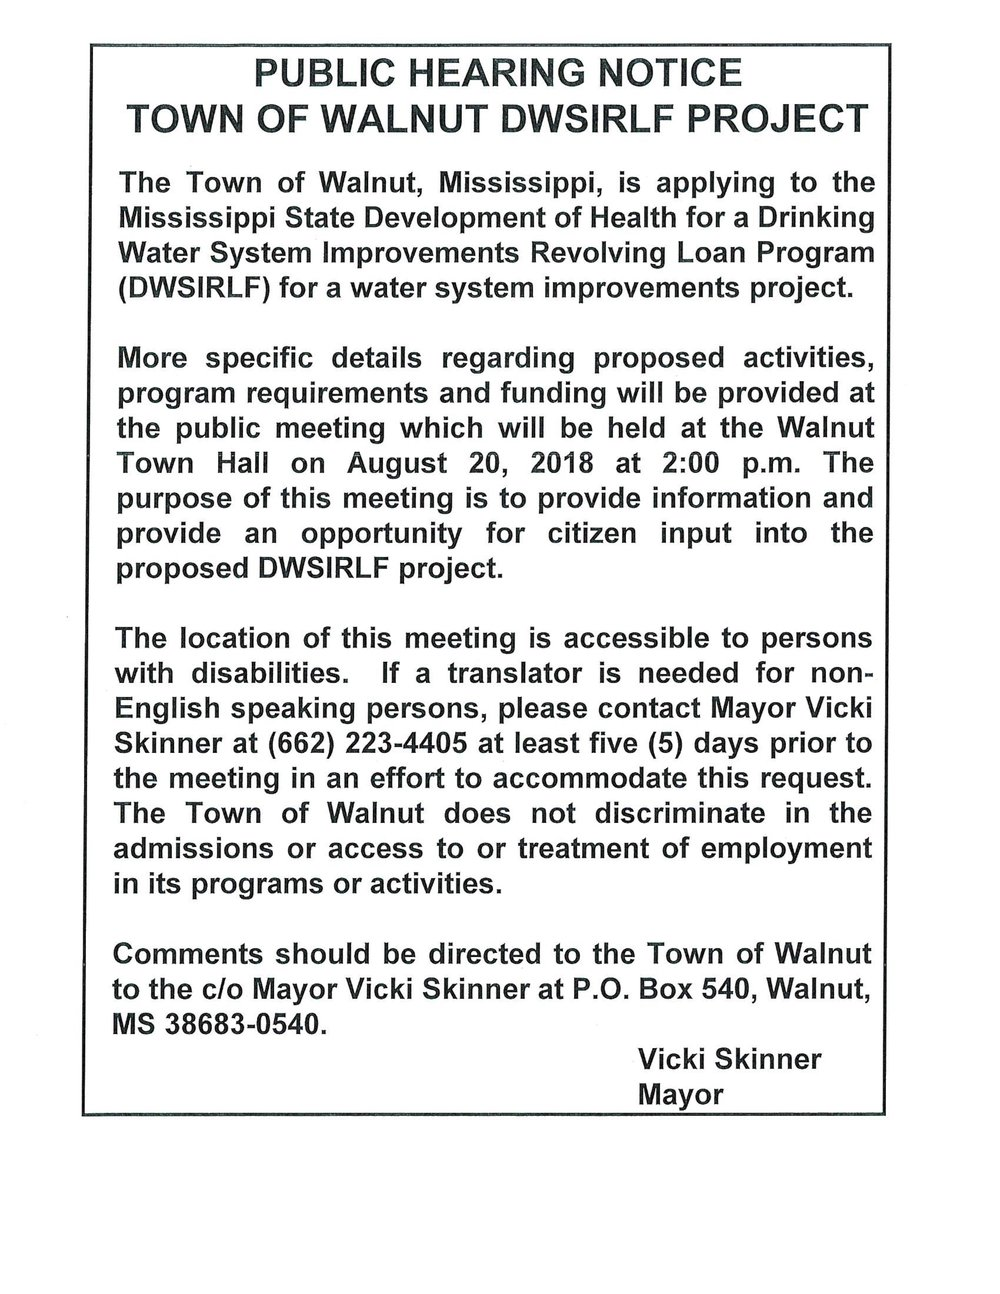 Public Meeting Notice for water improvements.jpg